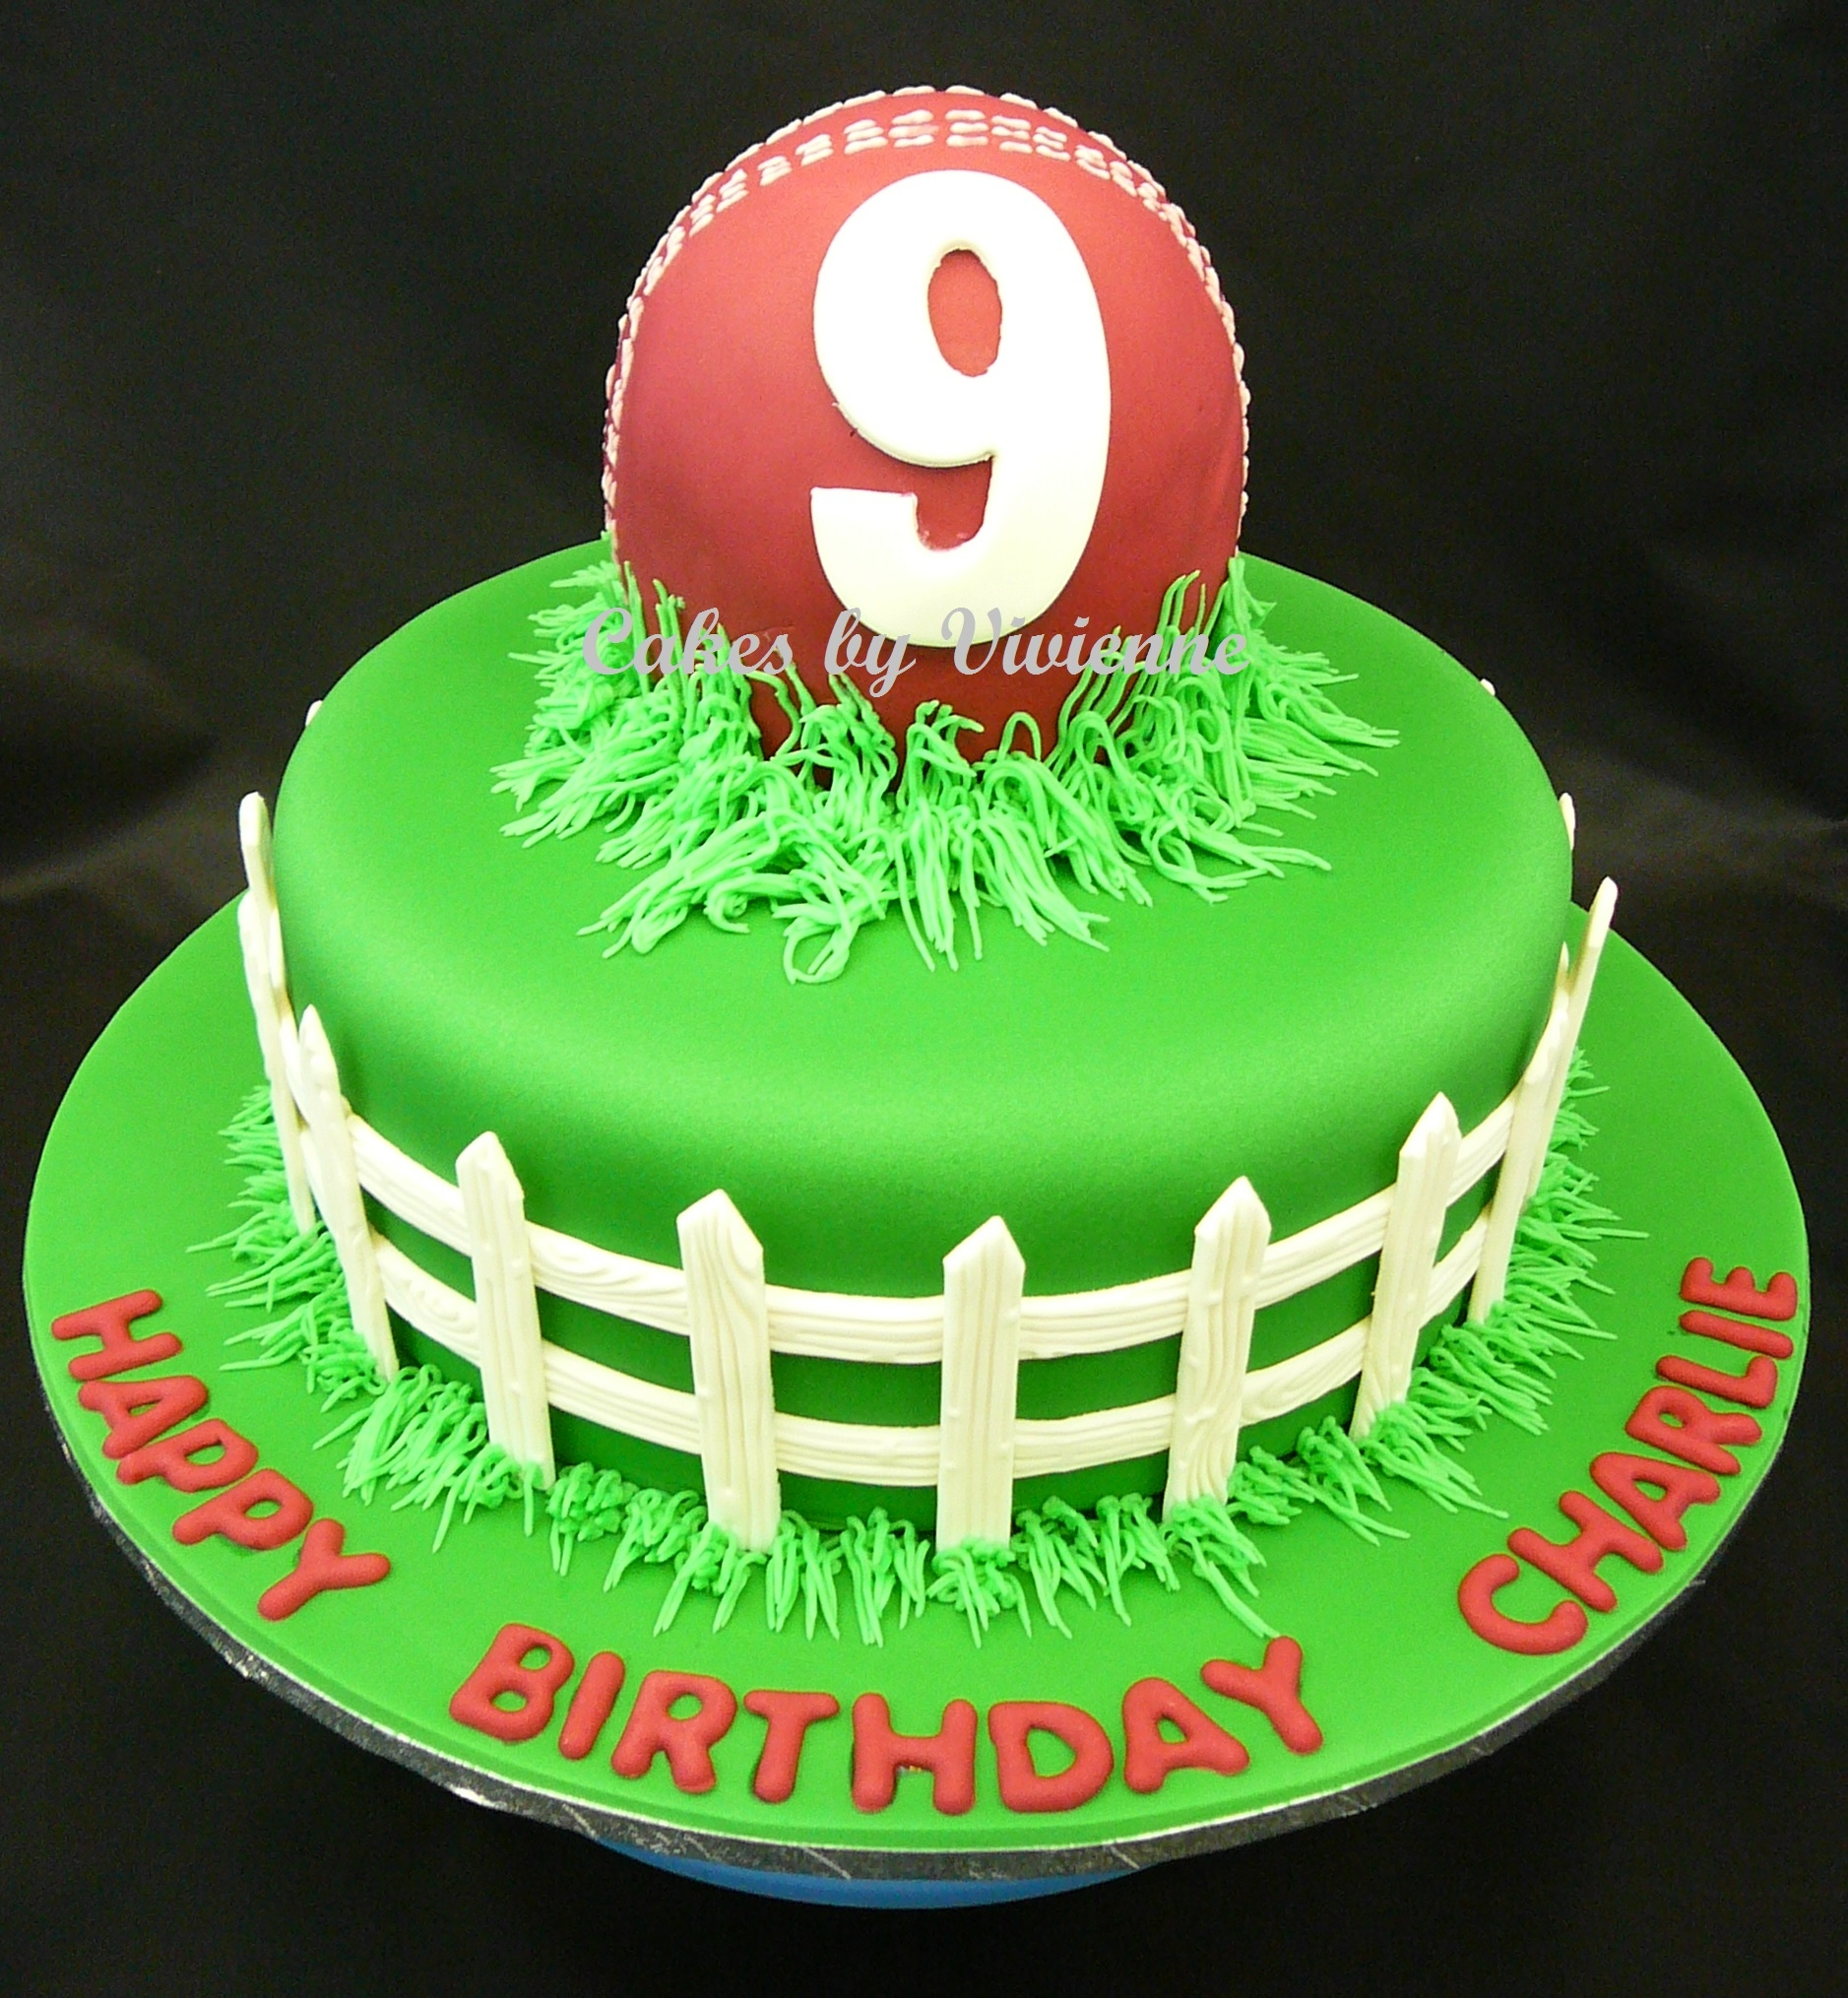 Cake Decorating Cricket Figures : Cricket Birthday Cake - CakeCentral.com